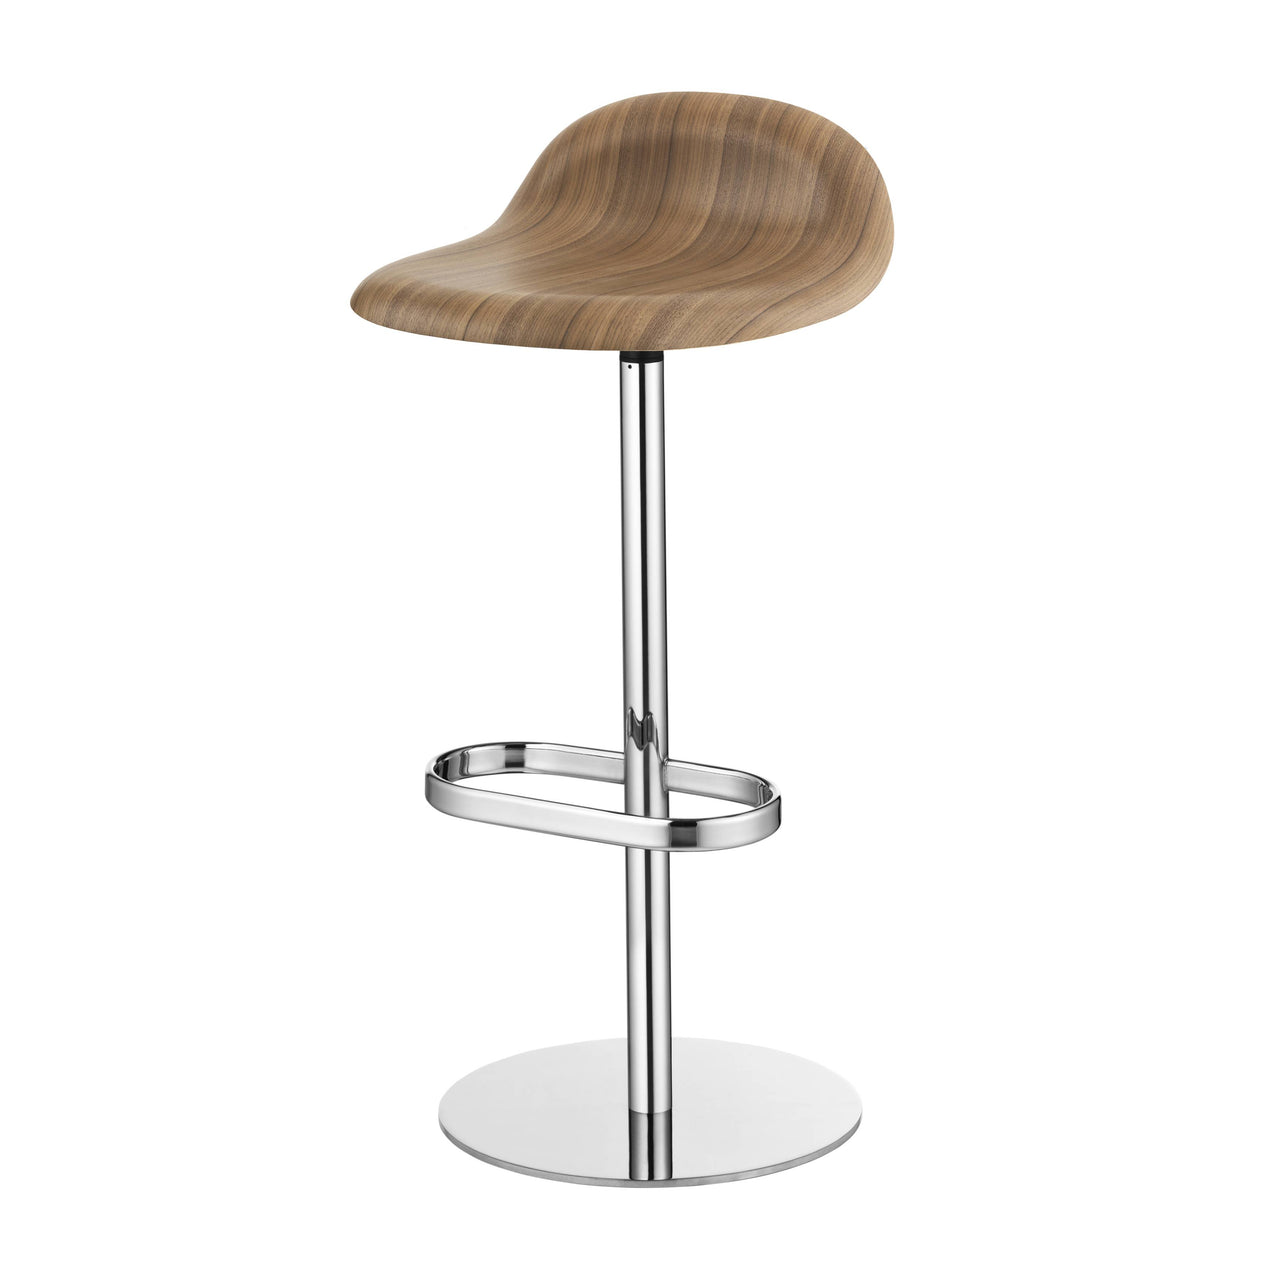 3D Bar Stool: Swivel Base + American Walnut